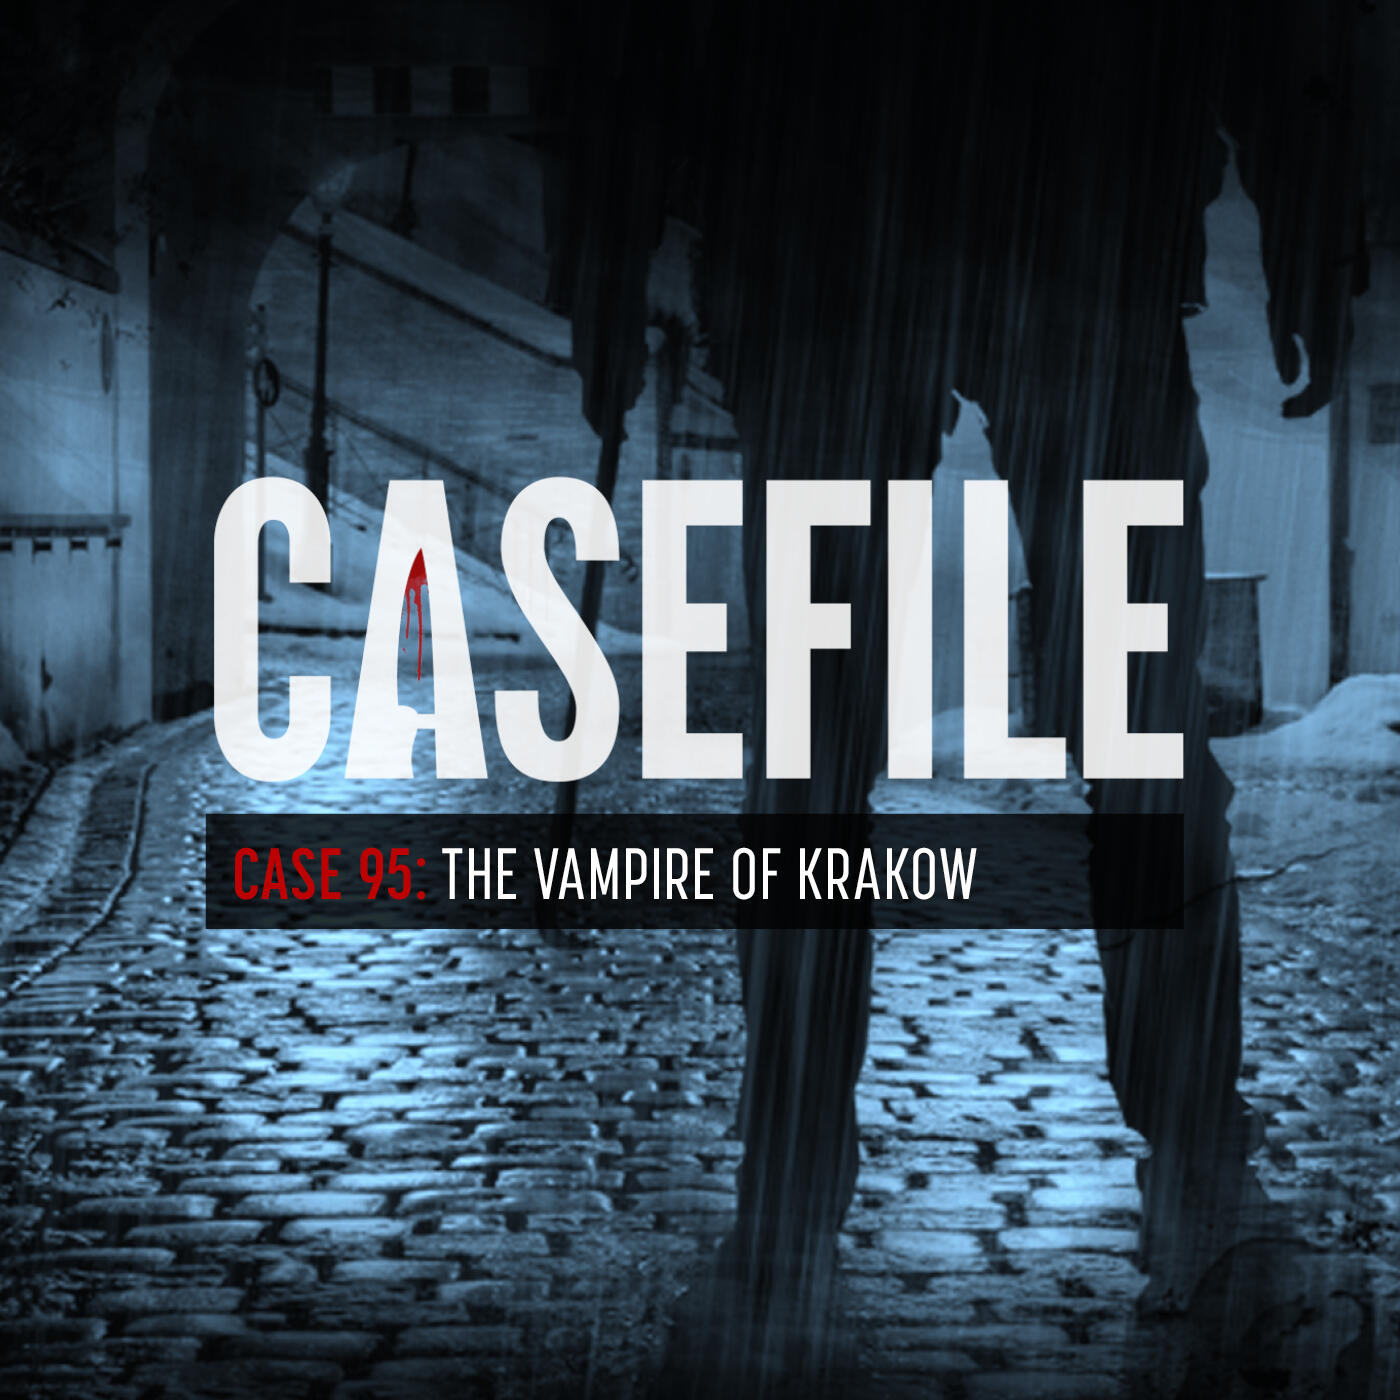 Case 95: The Vampire of Krakow